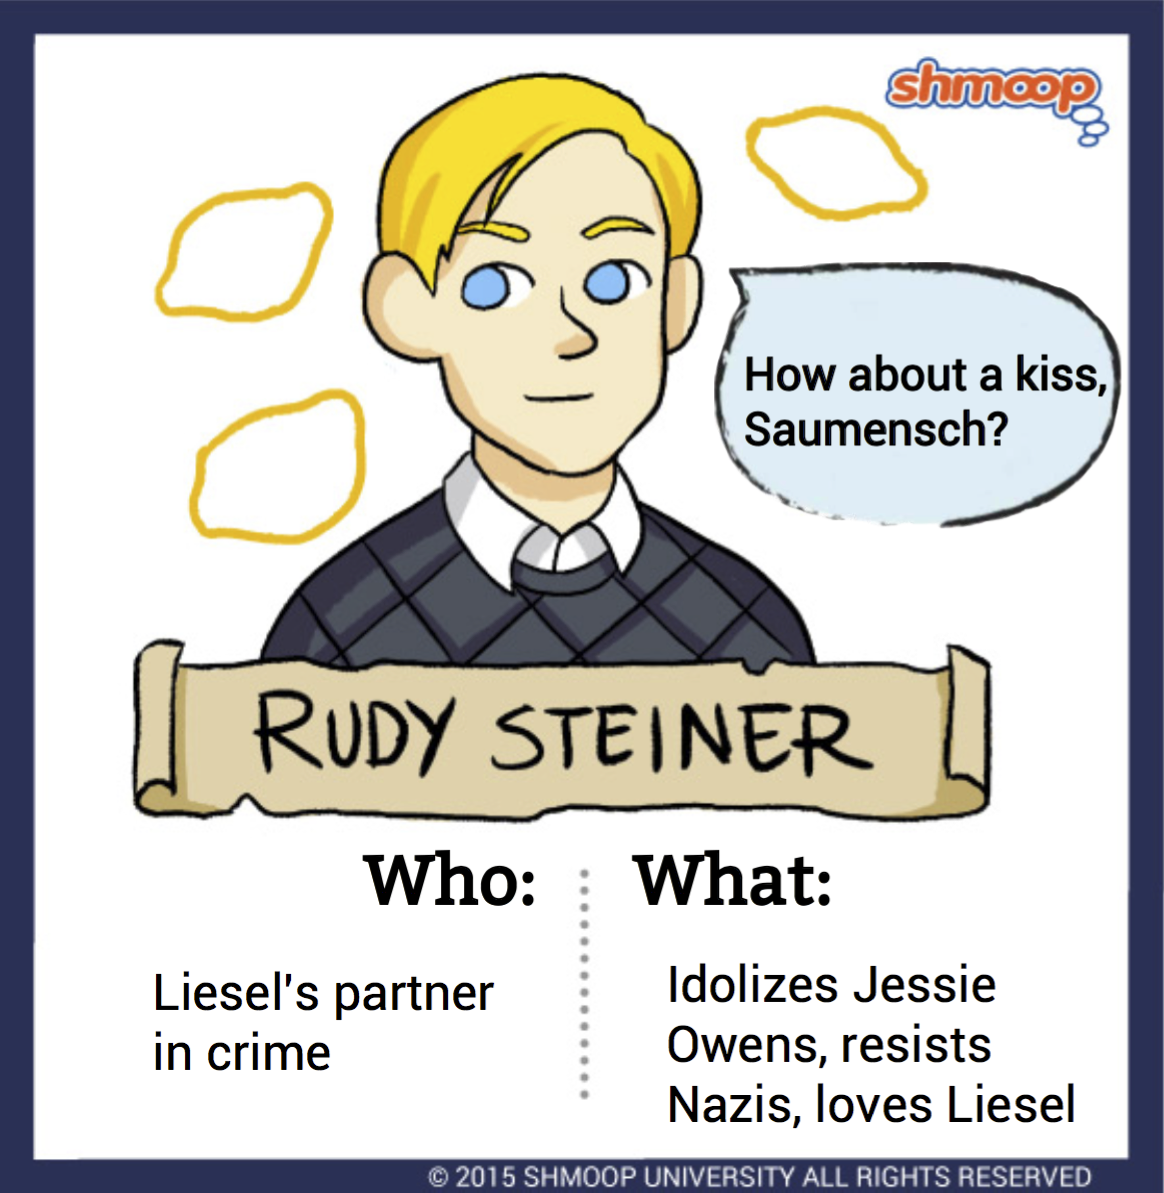 rudy steiner in the book thief character analysis